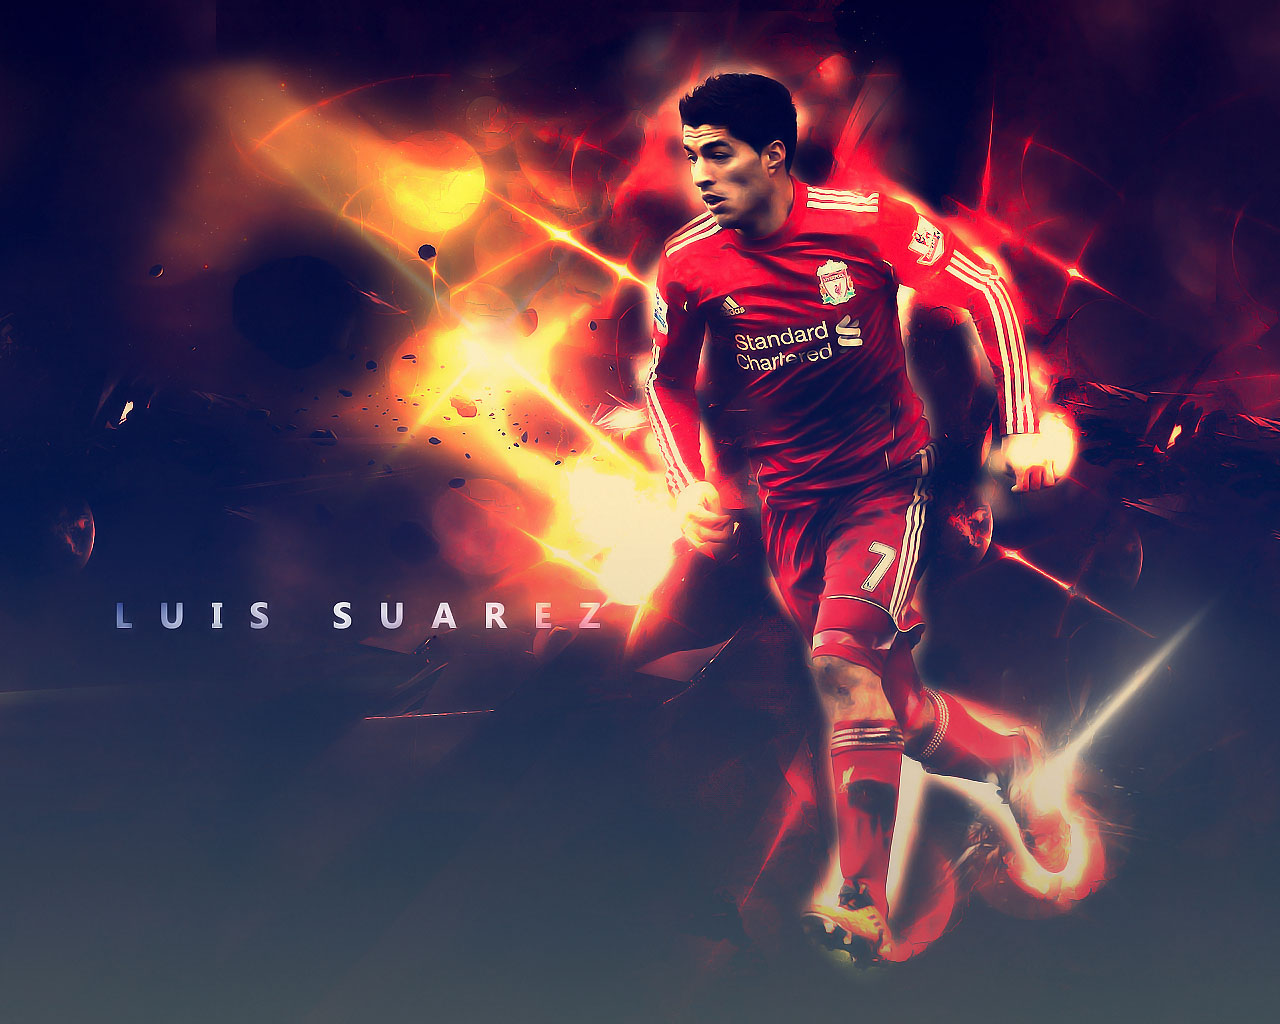 Luis Suarez Wallpapers High Resolution and Quality Download 1280x1024